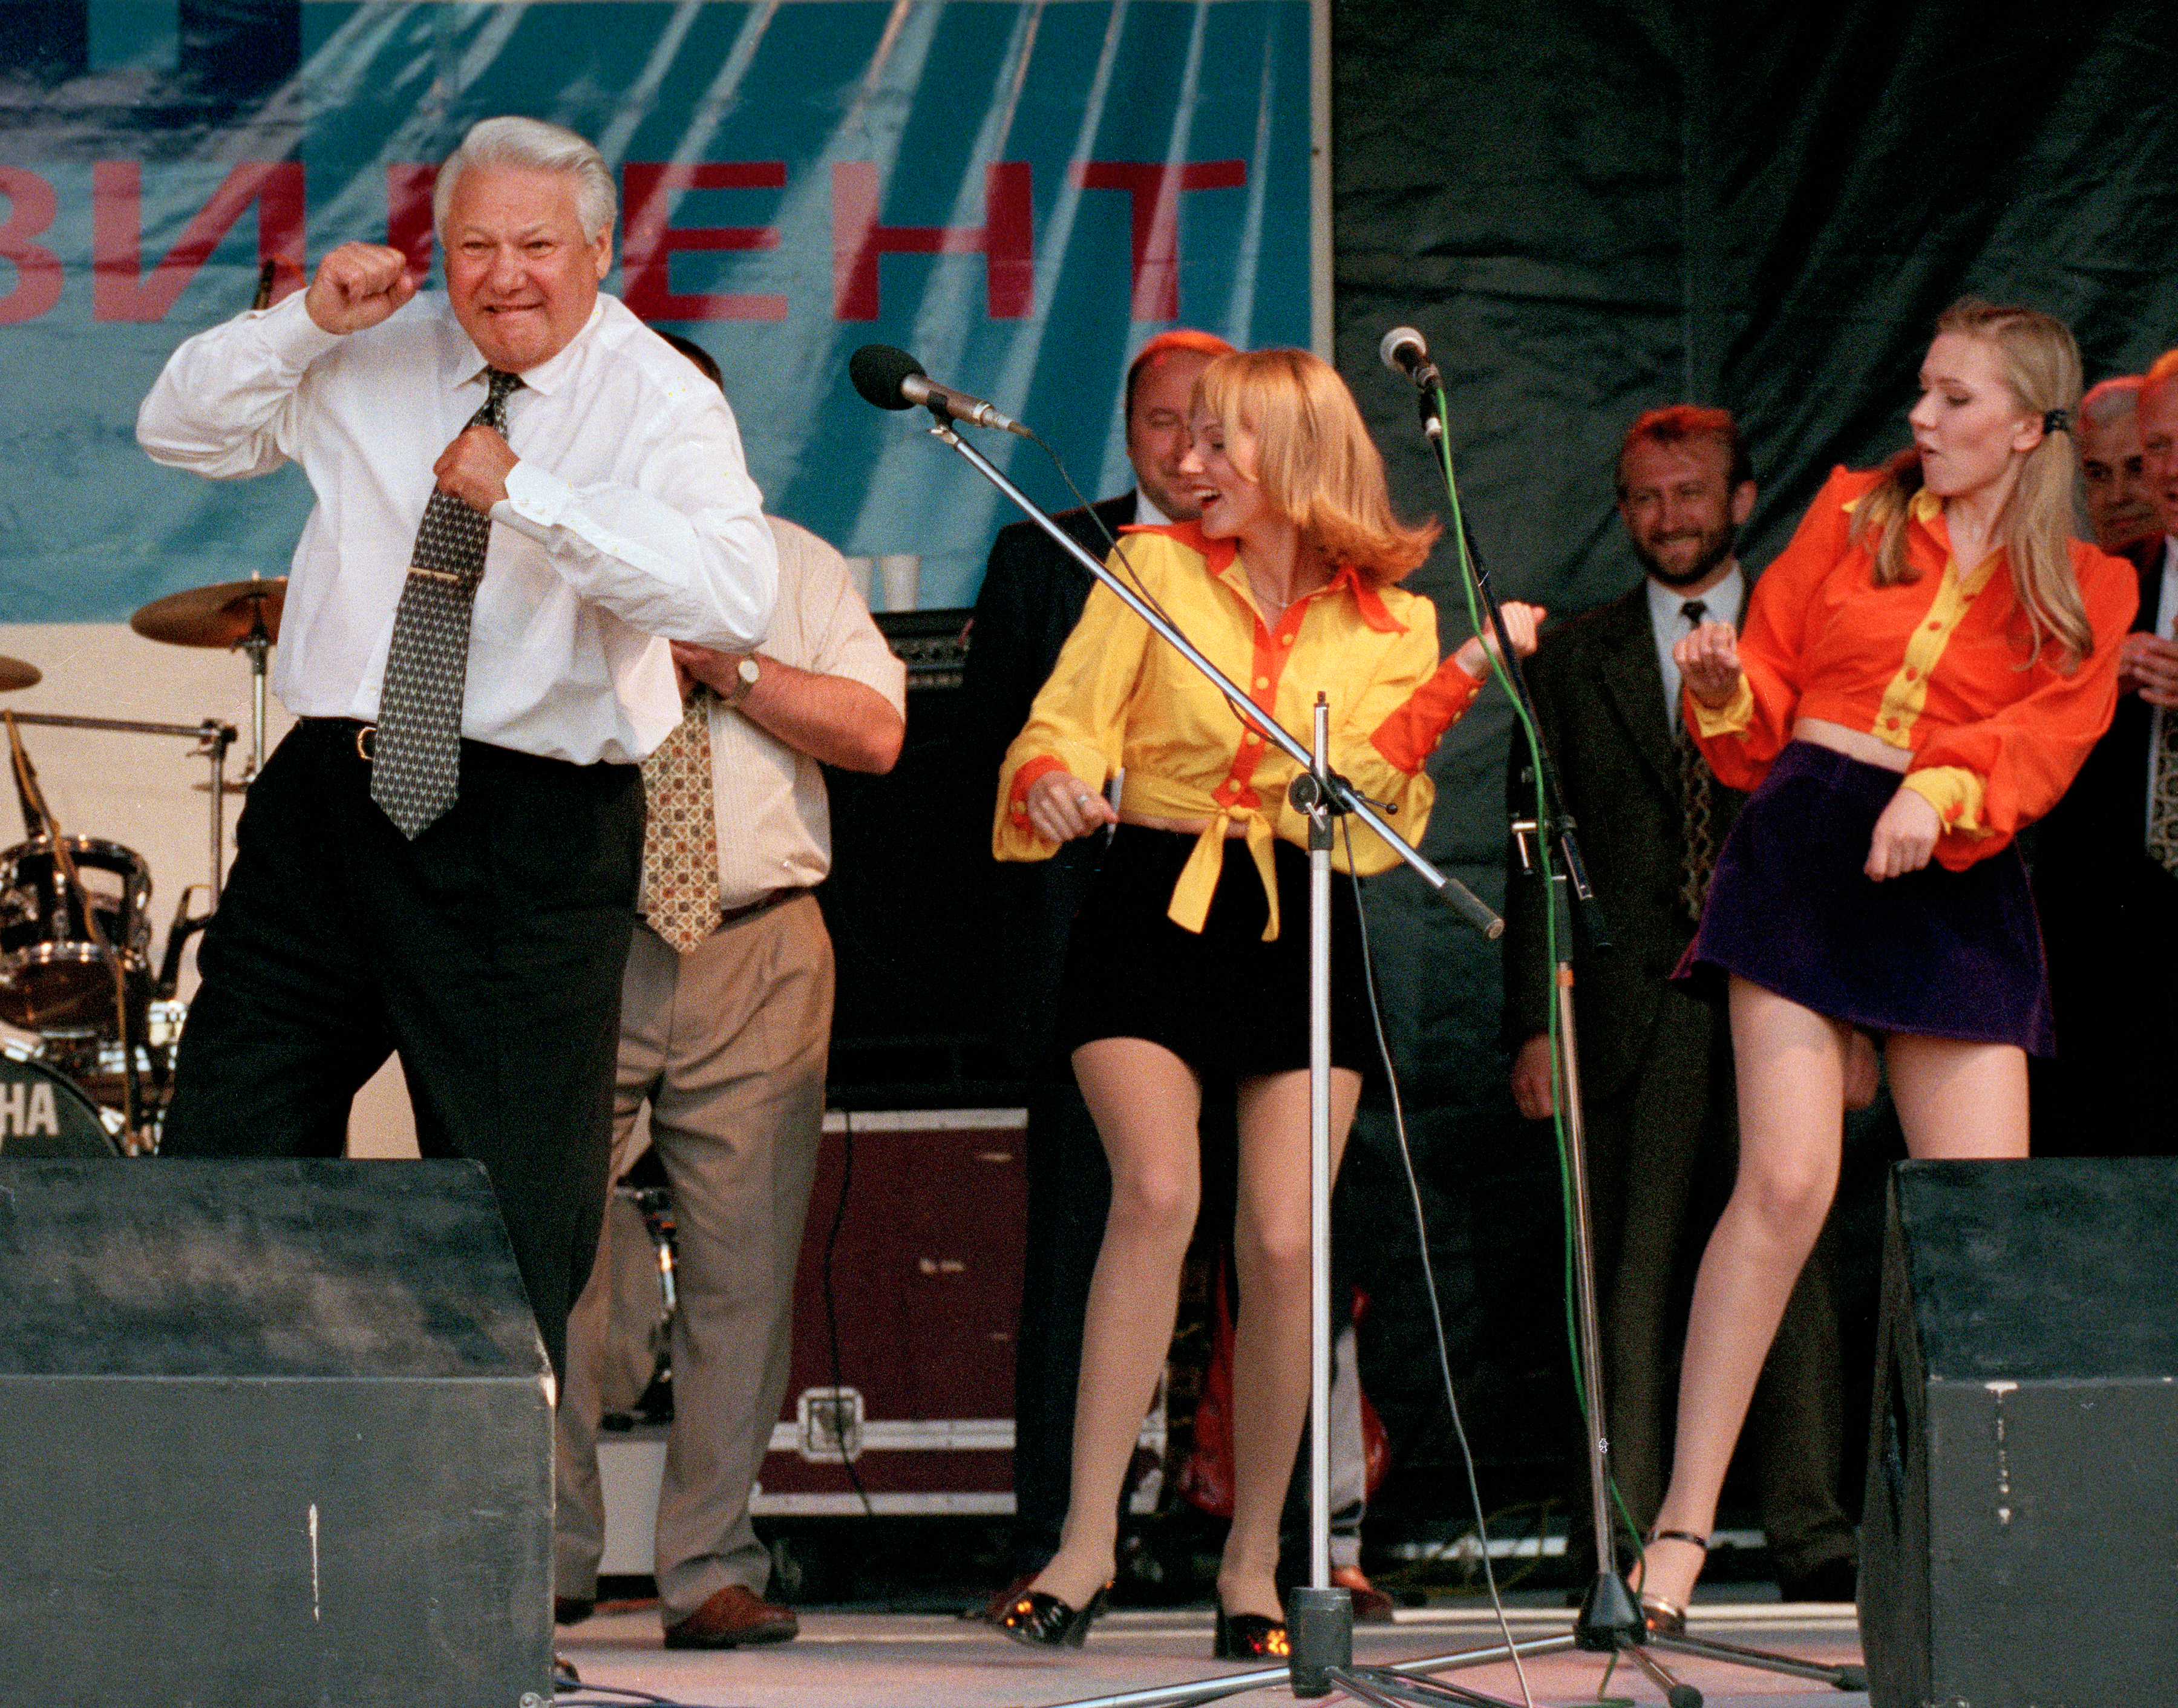 Russian President Boris Yeltsin dances at a rock concert during a campaign appearance in Rostov, June 10, 1996. Yeltsin went on to defeat Communist challenger Gennady Zyuganov in a runoff election for the Russian presidency. (AP Photo/Alexander Zemlianichenko)